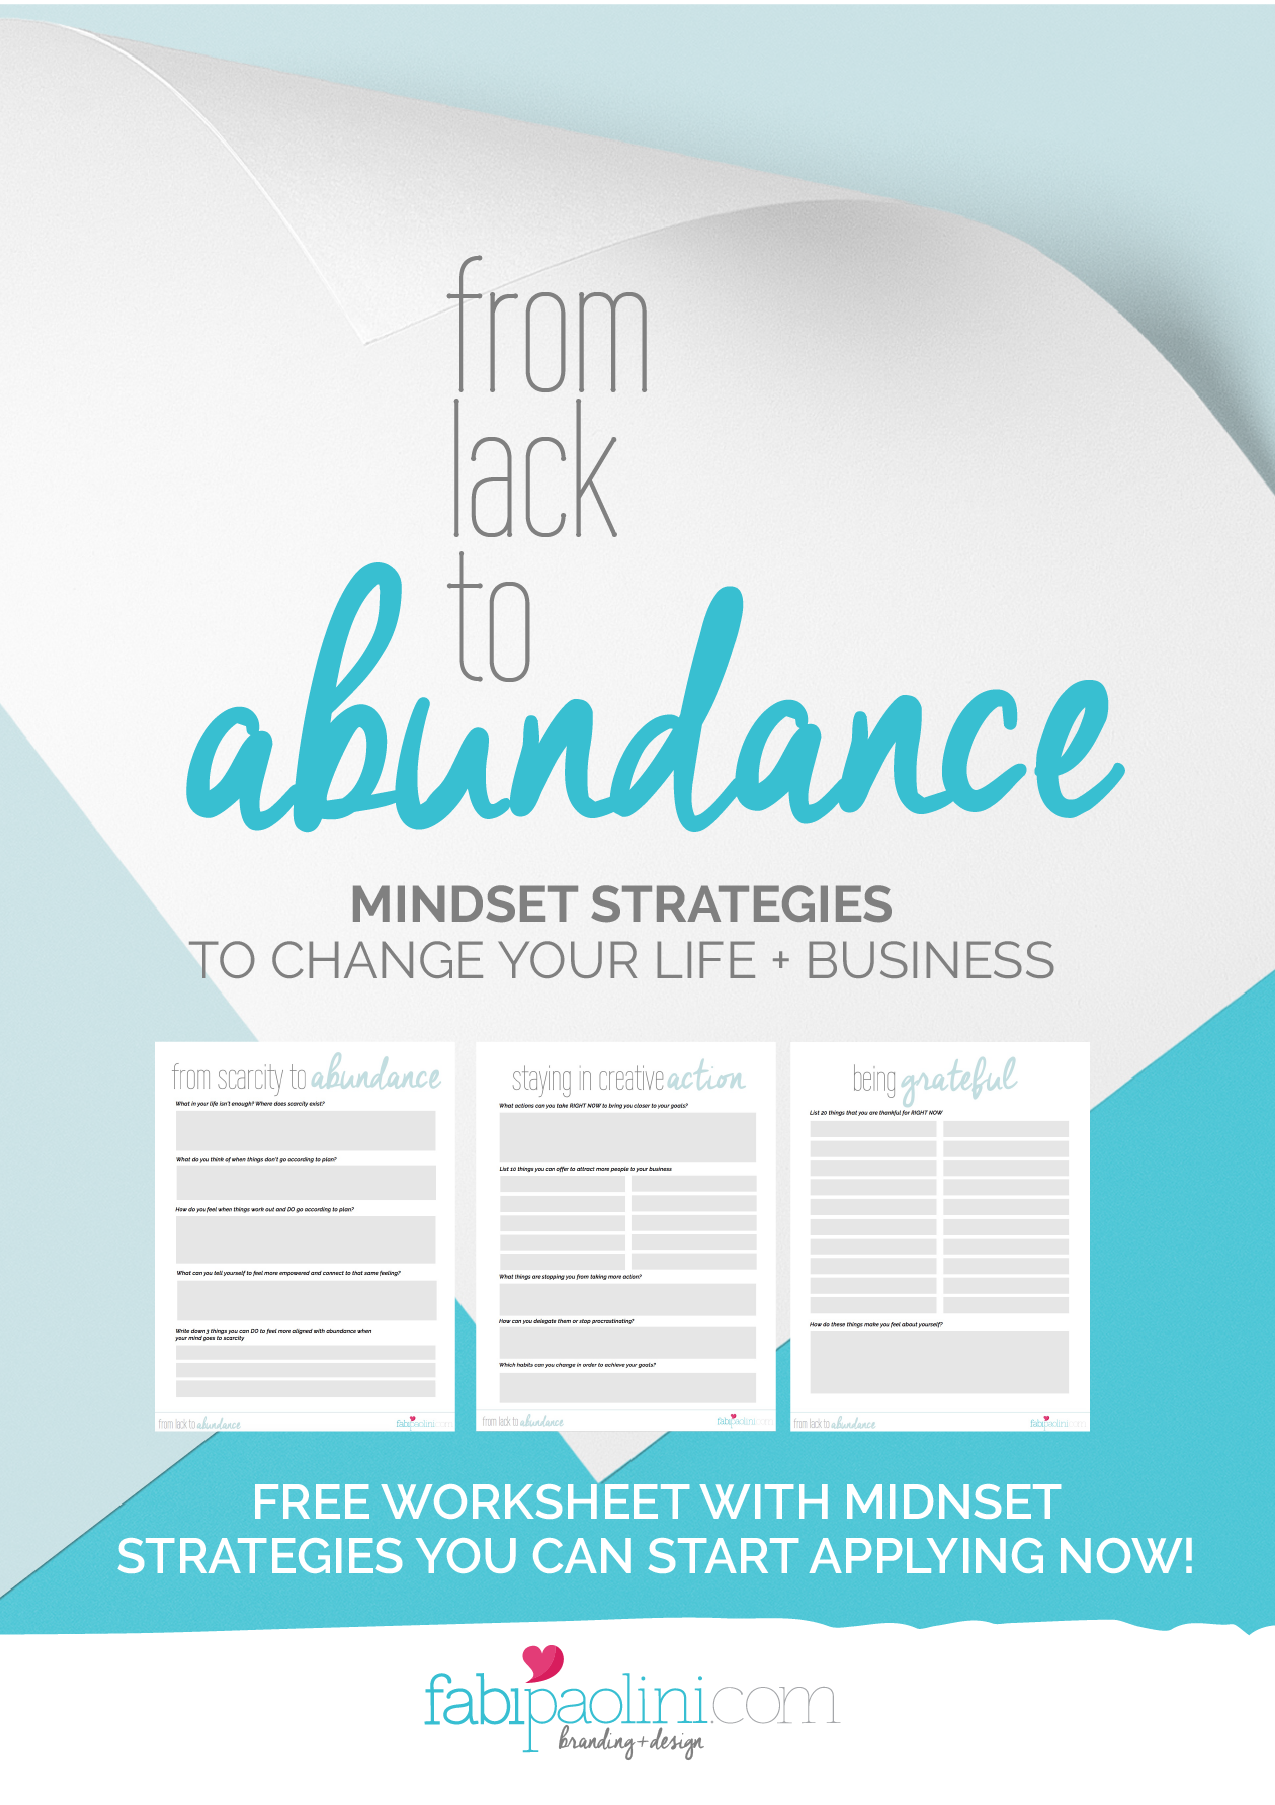 5 Mindset Strategies That Radically Changed My Business